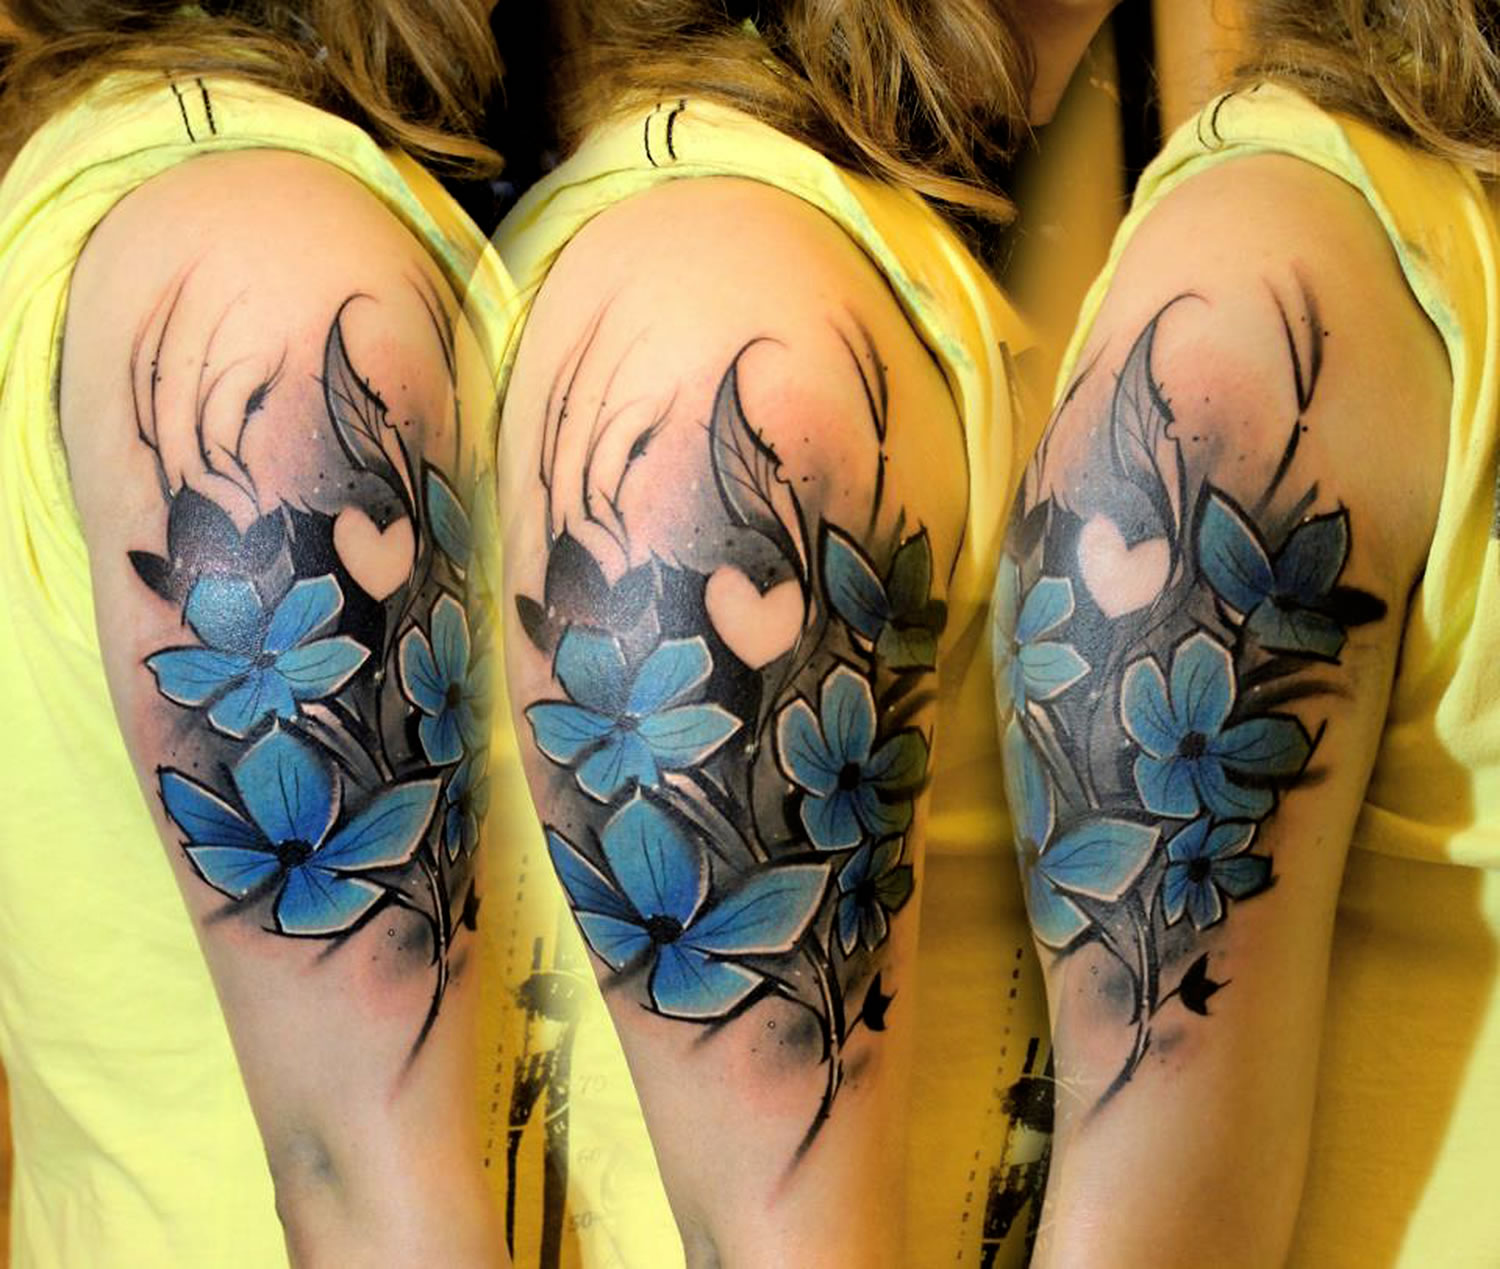 painterly blue flower tattoo by Lukasz Bam Kaczmarek